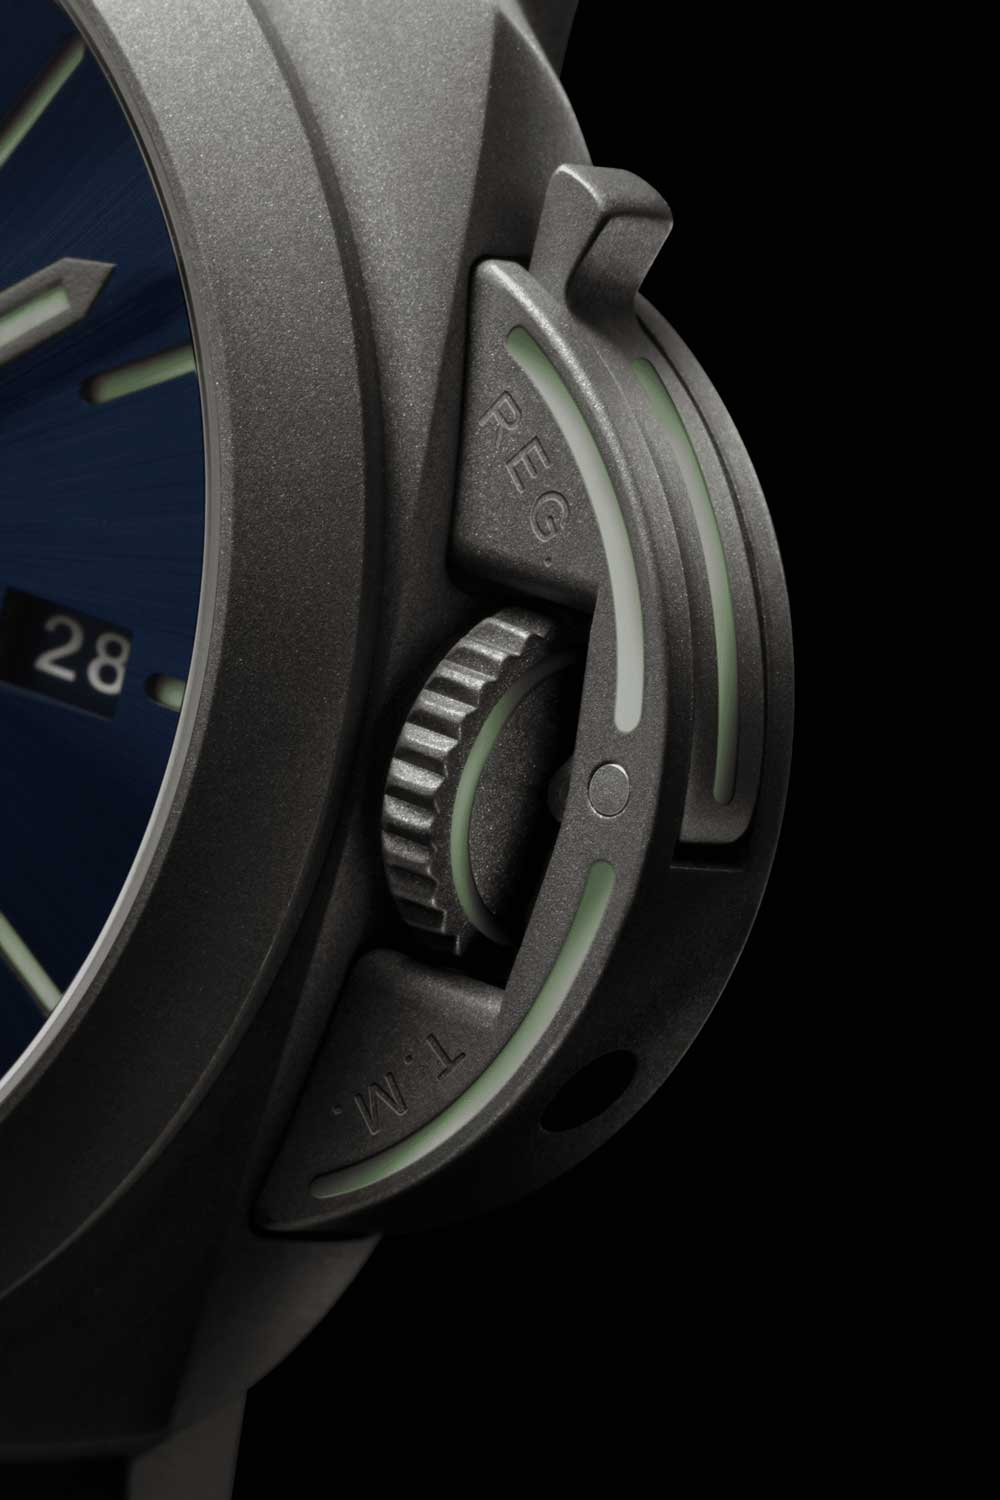 The crown protecting bridge also bears Super-LumiNova pigmented outlines.